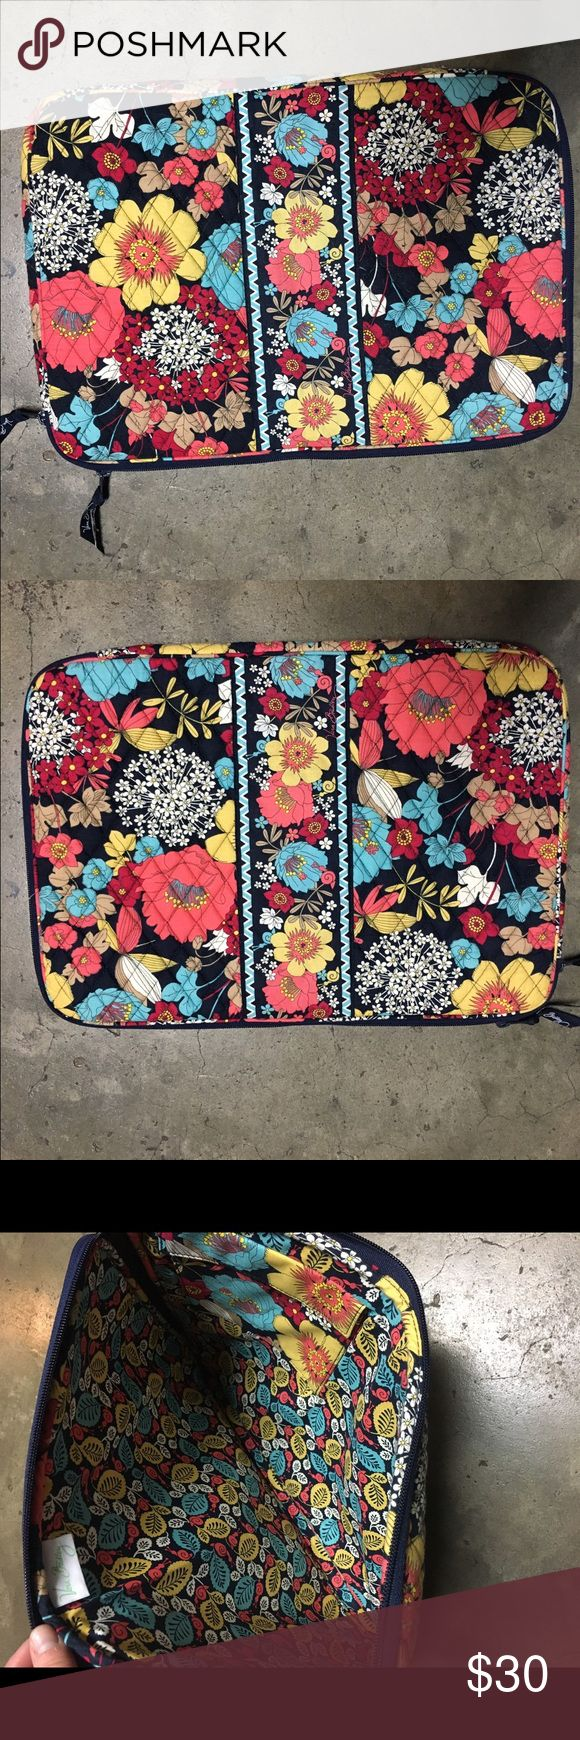 Vera Bradley Laptop Cover (MacBook Pro) 17 inch wide by 12 inch tall, Vera Bradley MacBook Pro laptop cover. Barely used! Vera Bradley Bags Laptop Bags